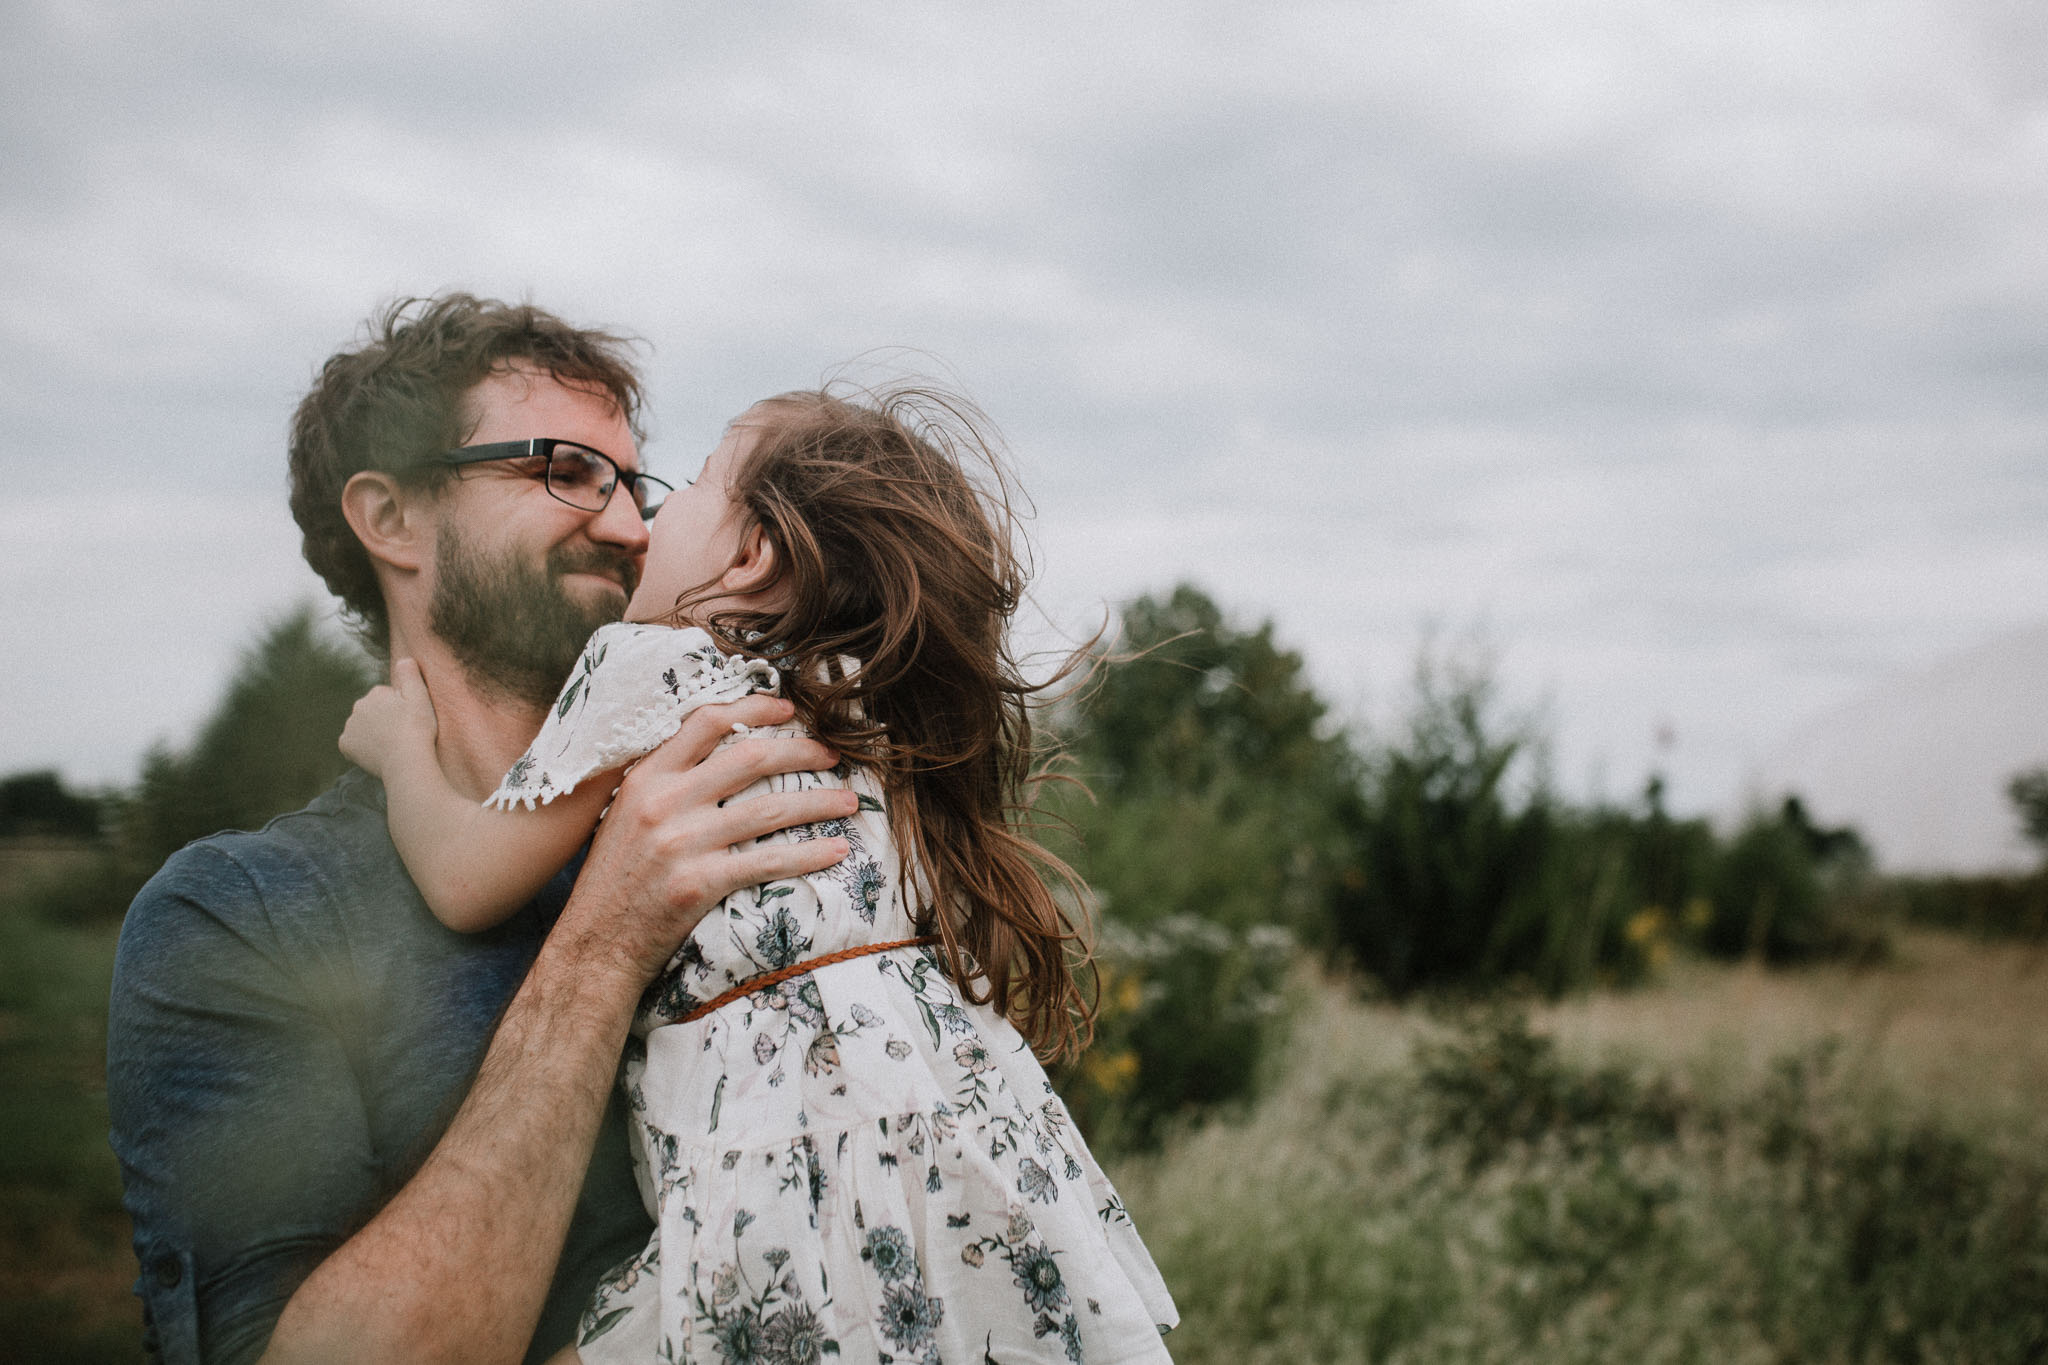 daddy daughter hug kiss Toddler Girl Ashburn Virginia Lifestyle Documentary Family Marti Austin Photography